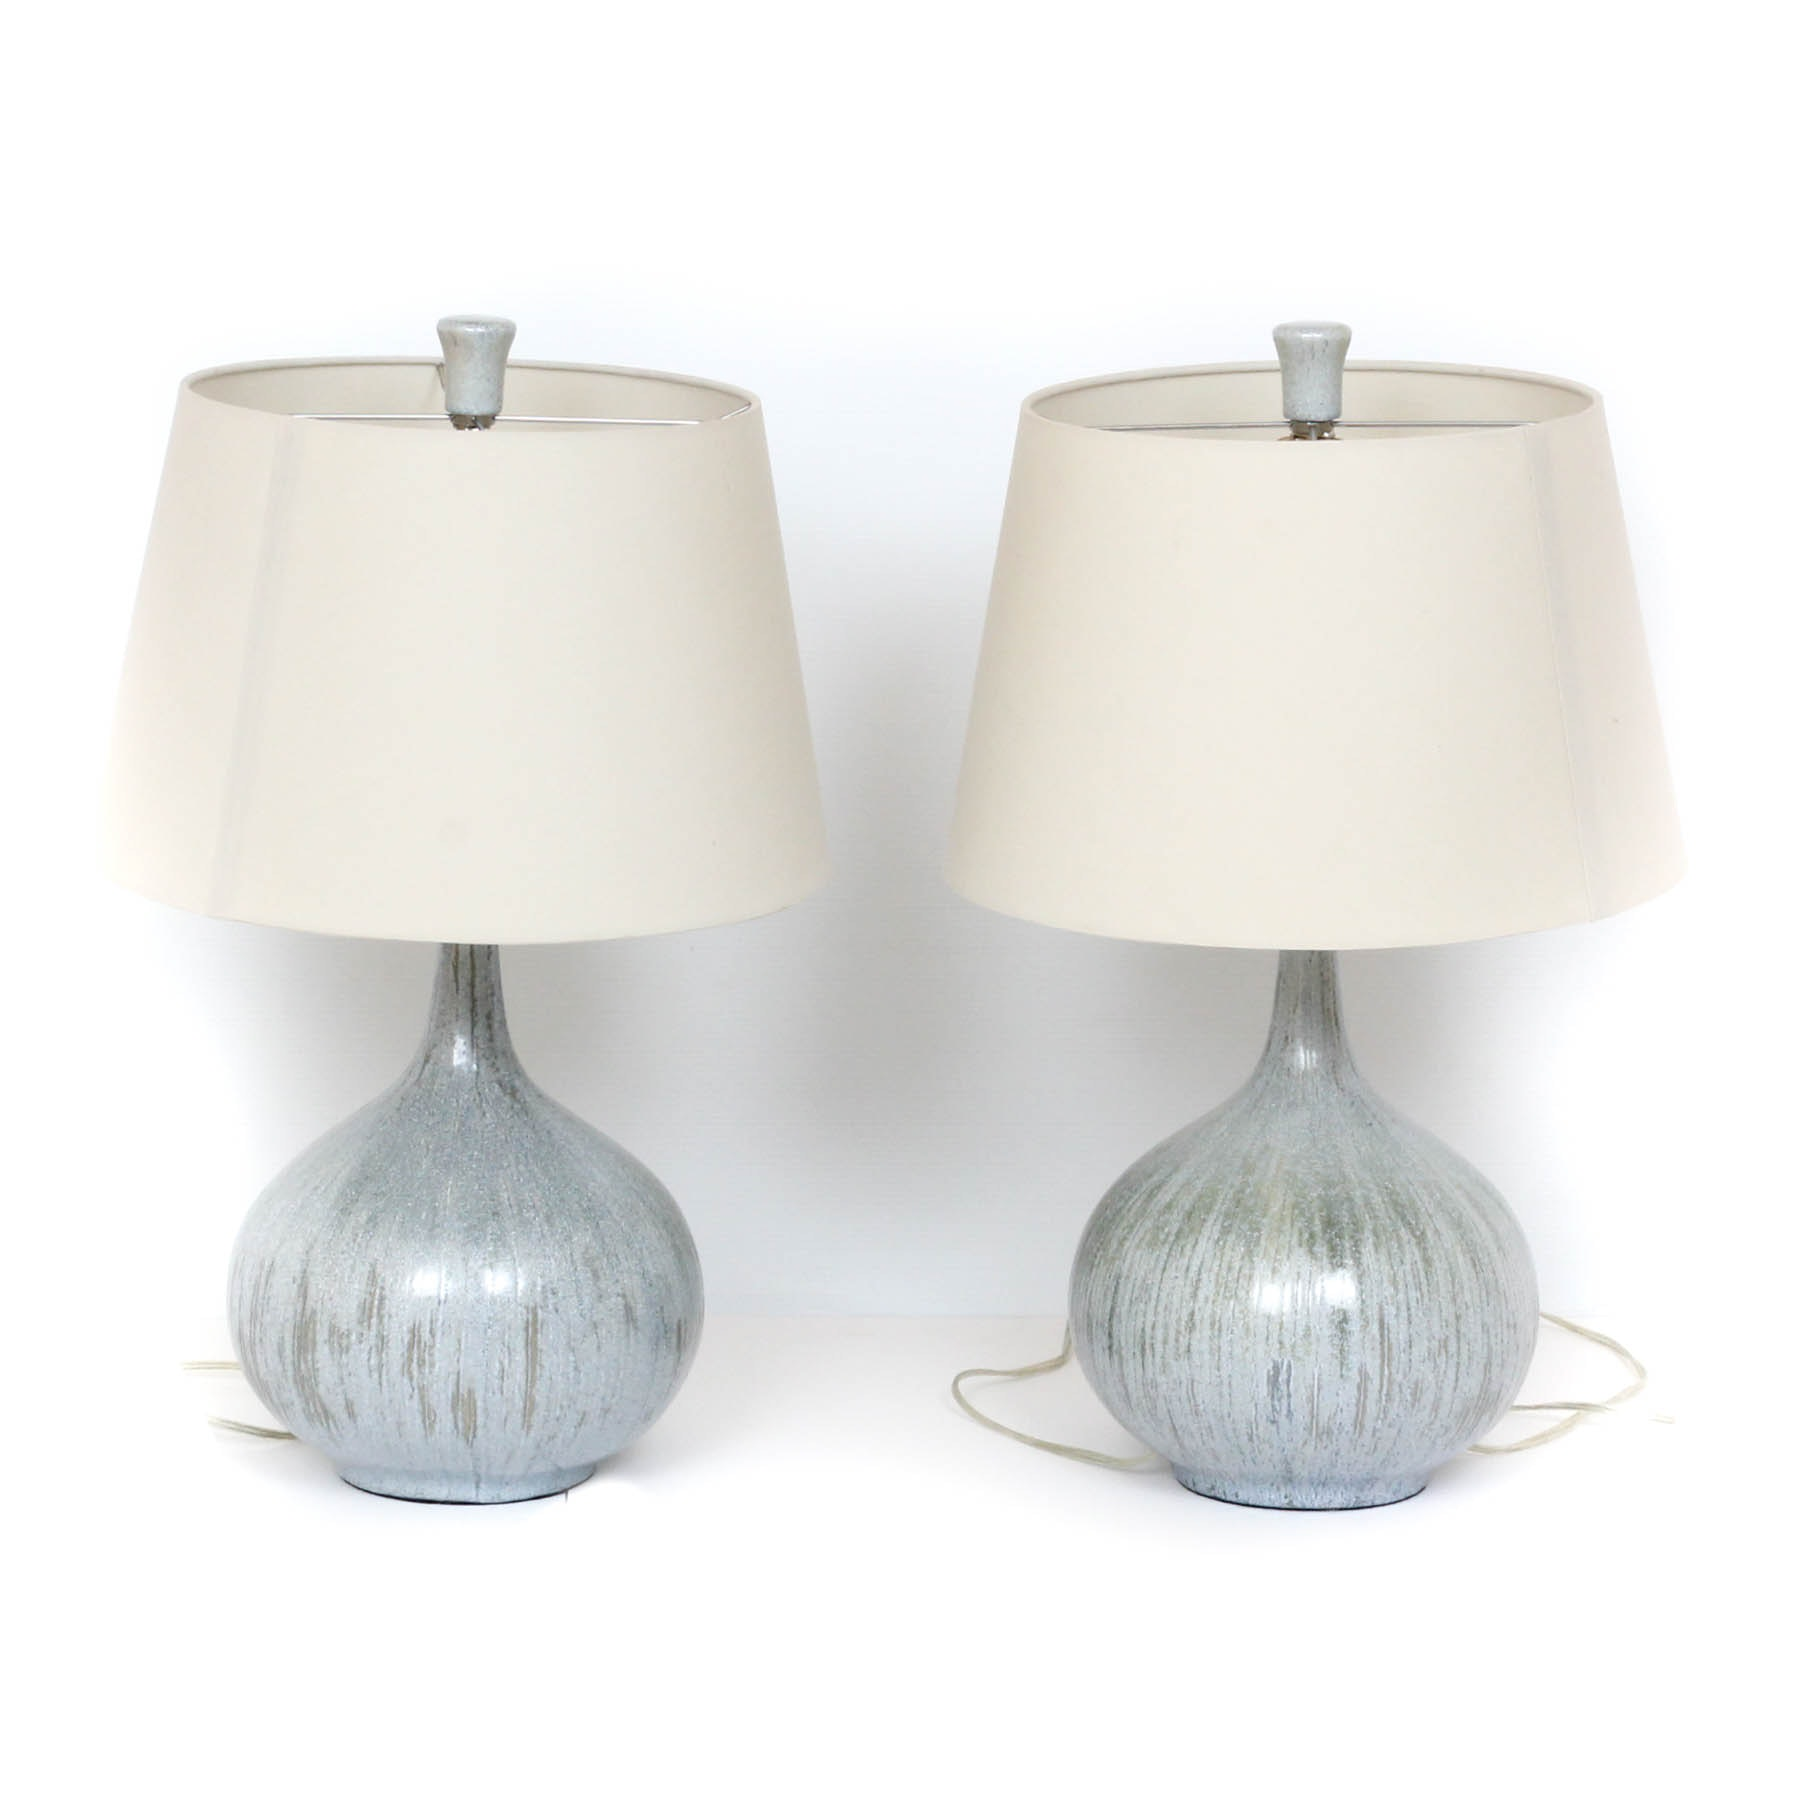 Contemporary Ceramic Table Lamps